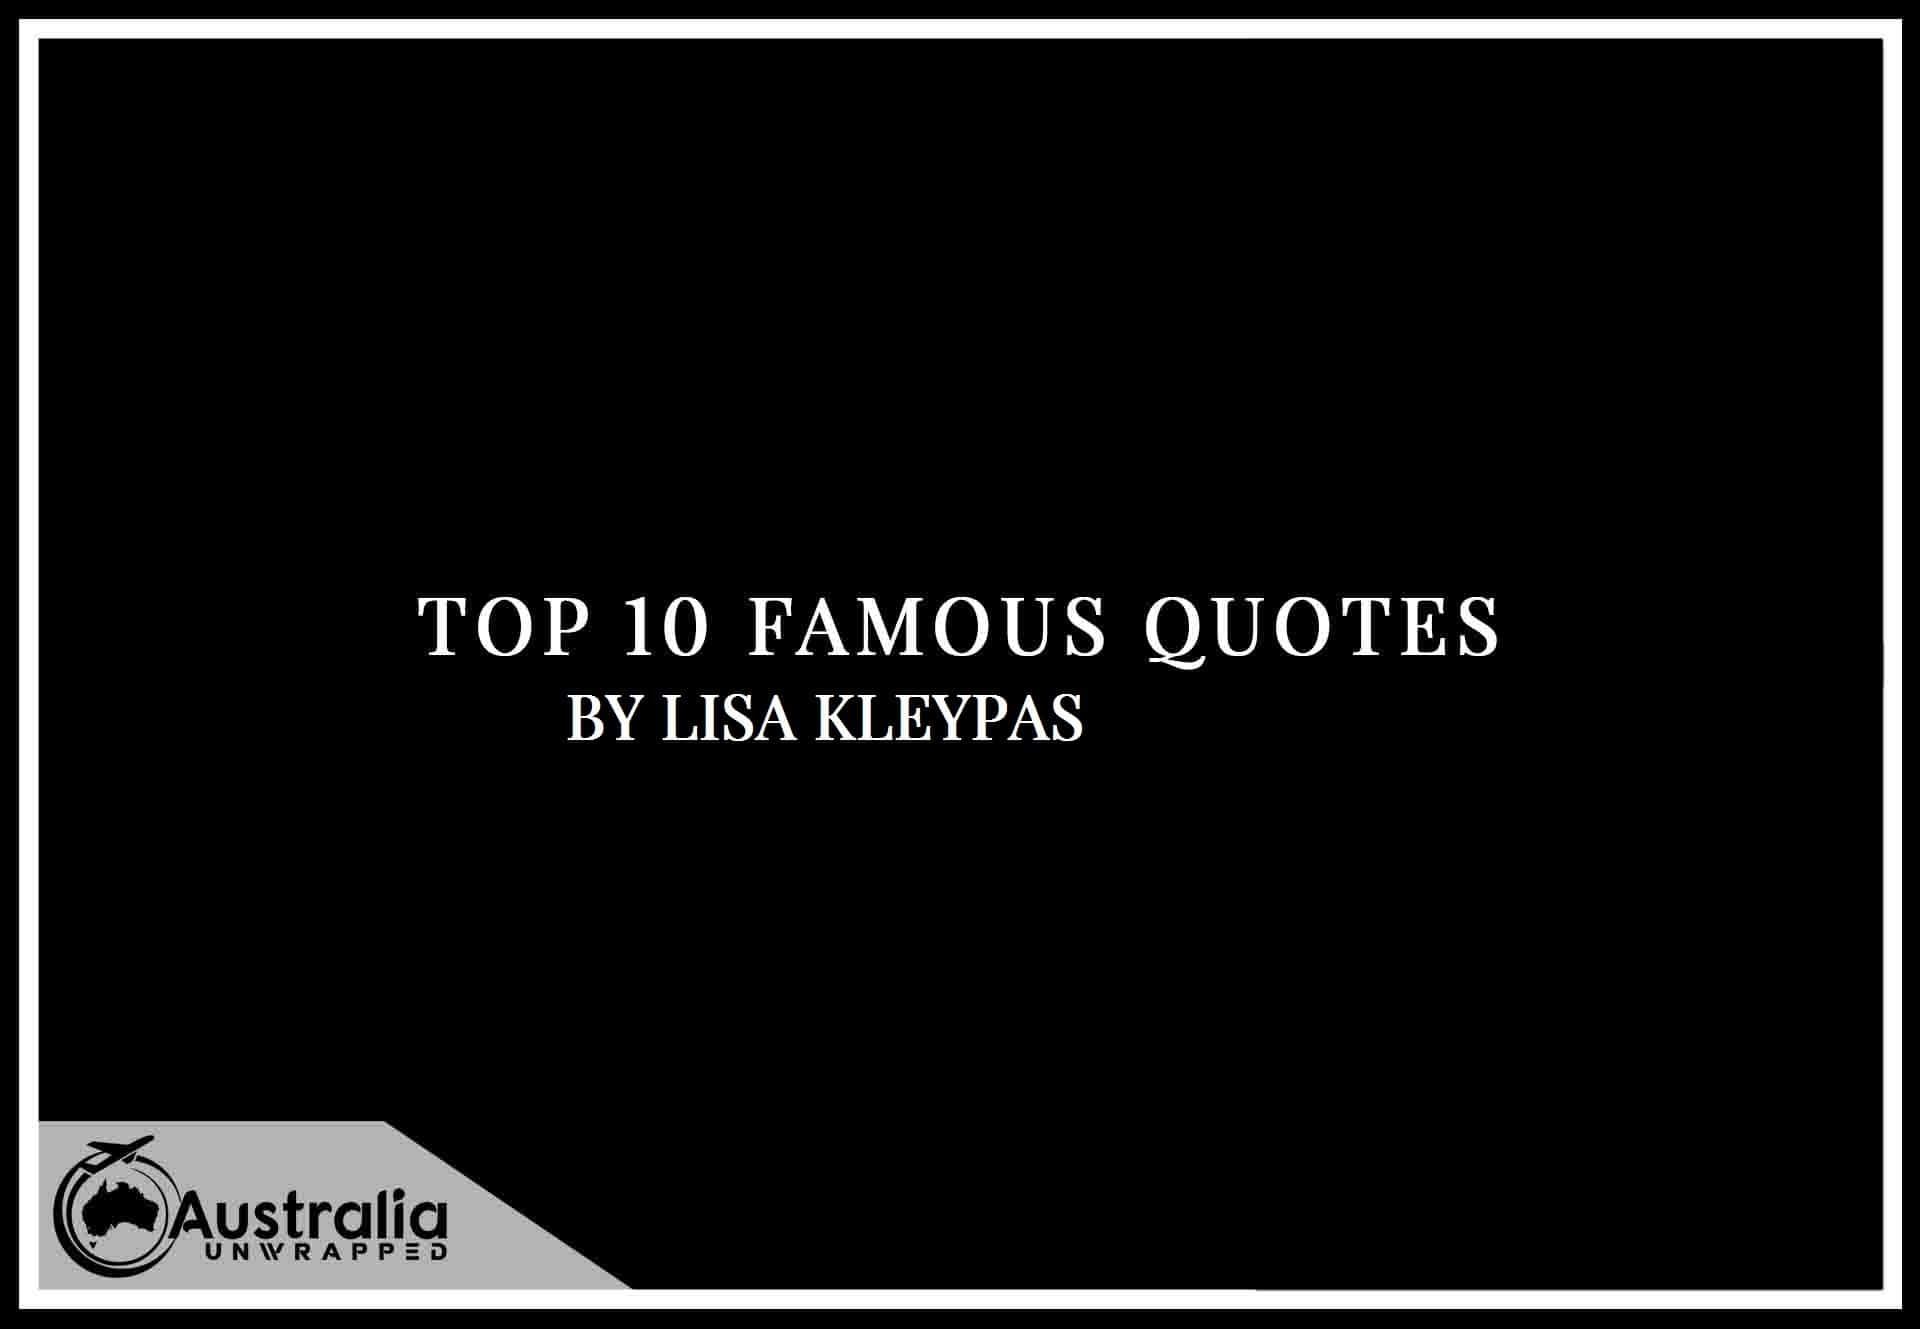 Lisa Kleypas's Top 10 Popular and Famous Quotes